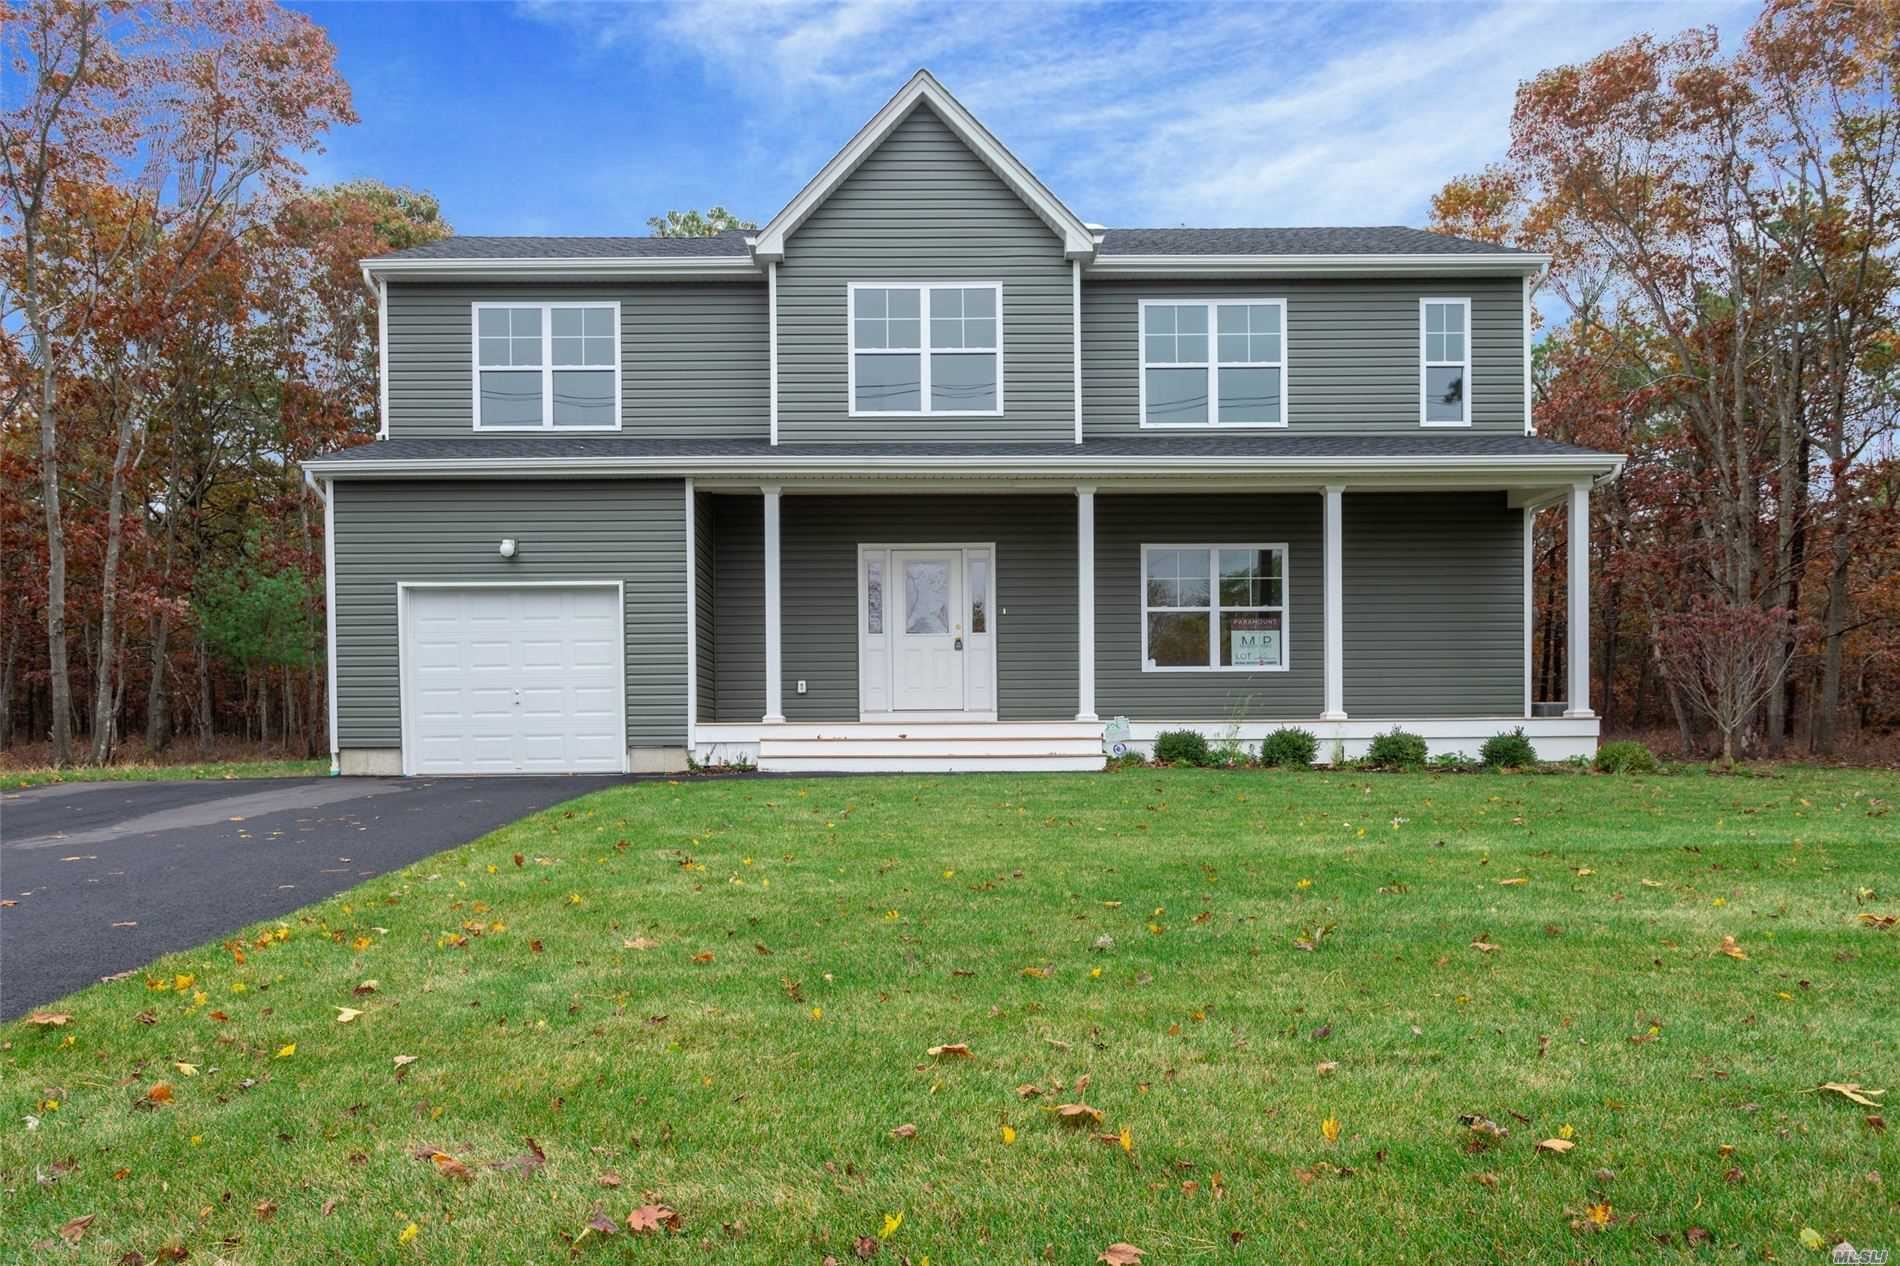 Lot 2 Scheyer Court, Medford, NY 11763 - MLS#: 3205981